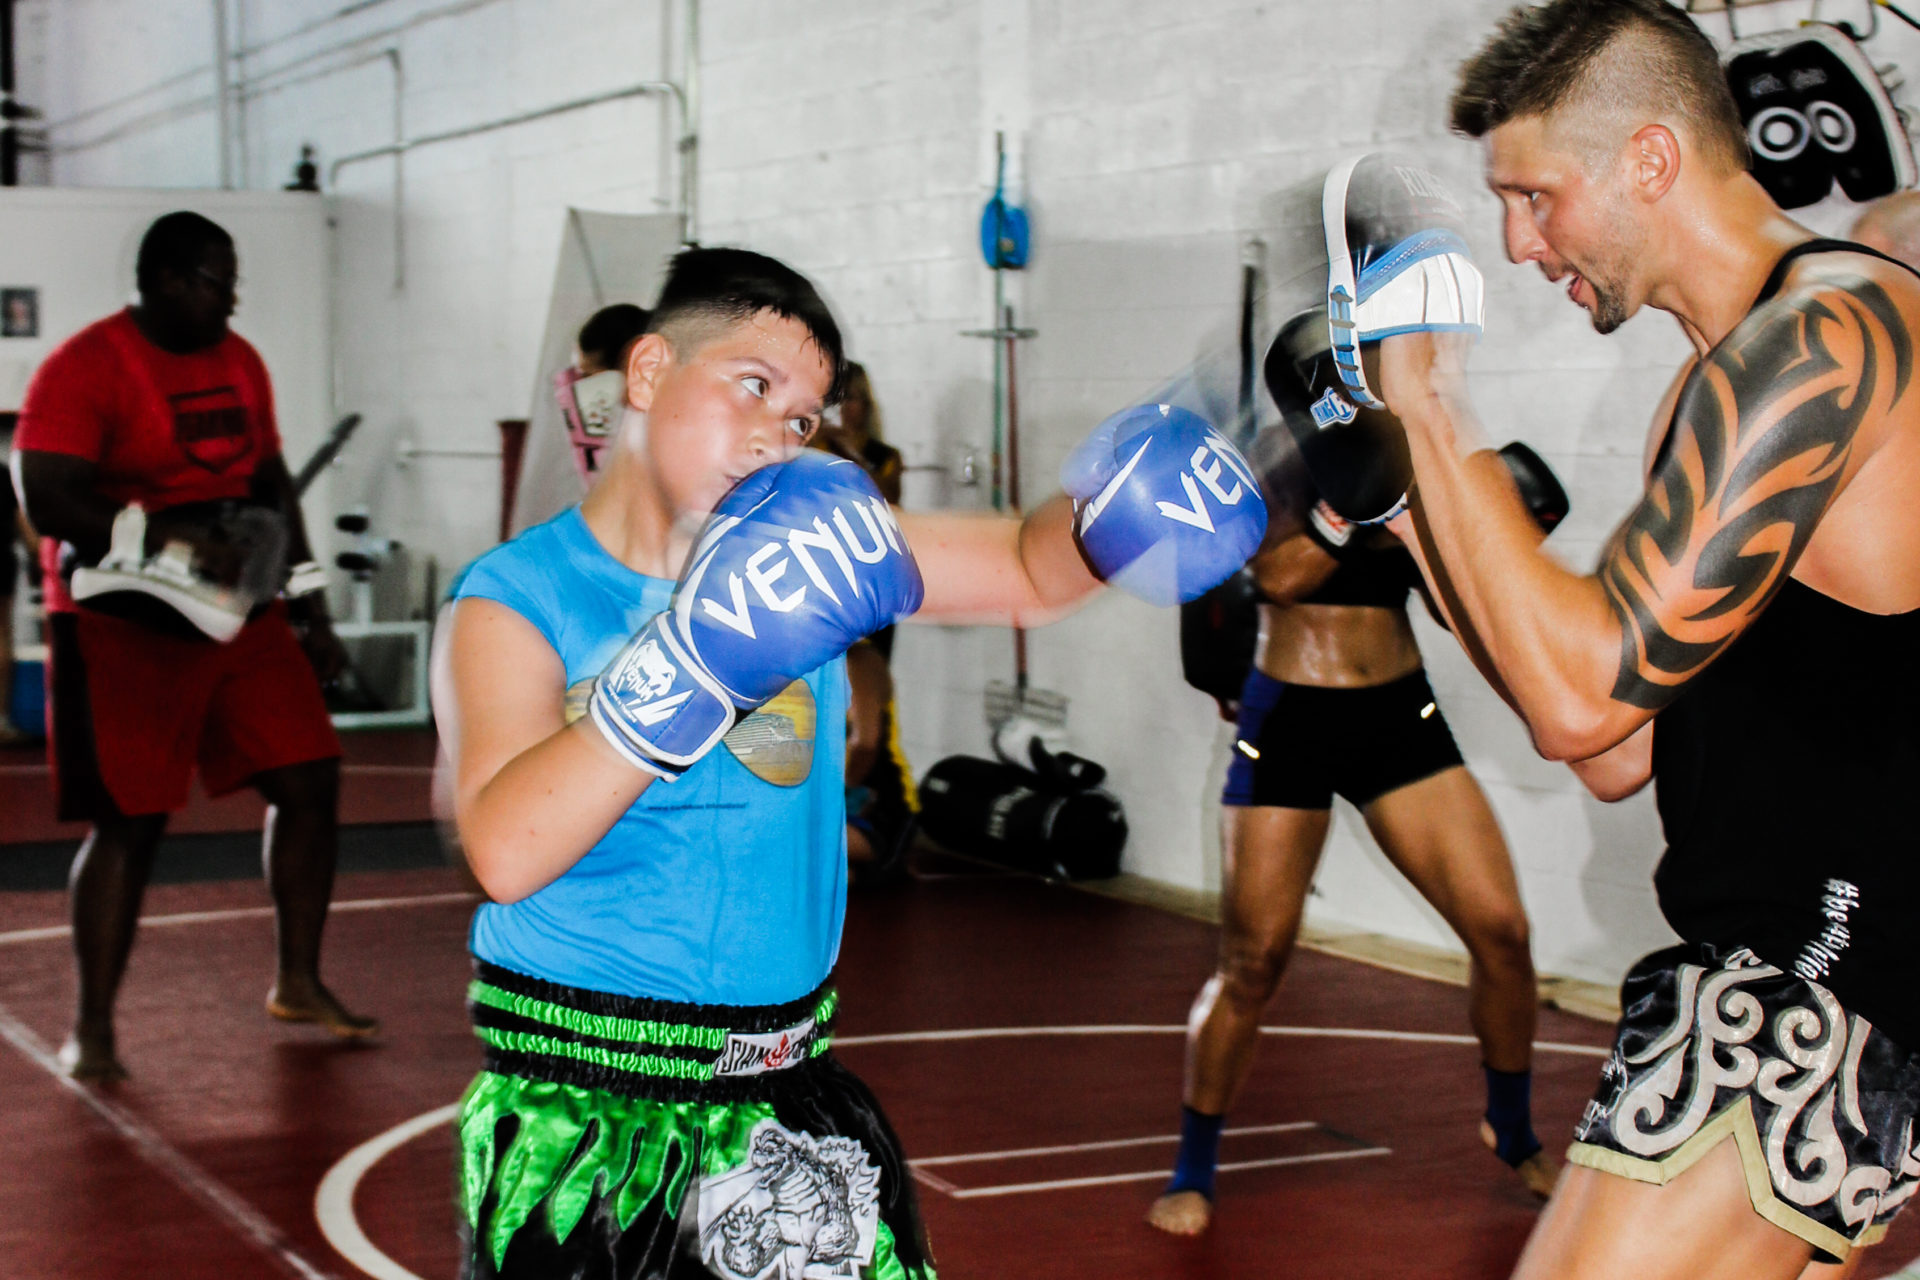 Kids Wolfpack Boxing Club Miami